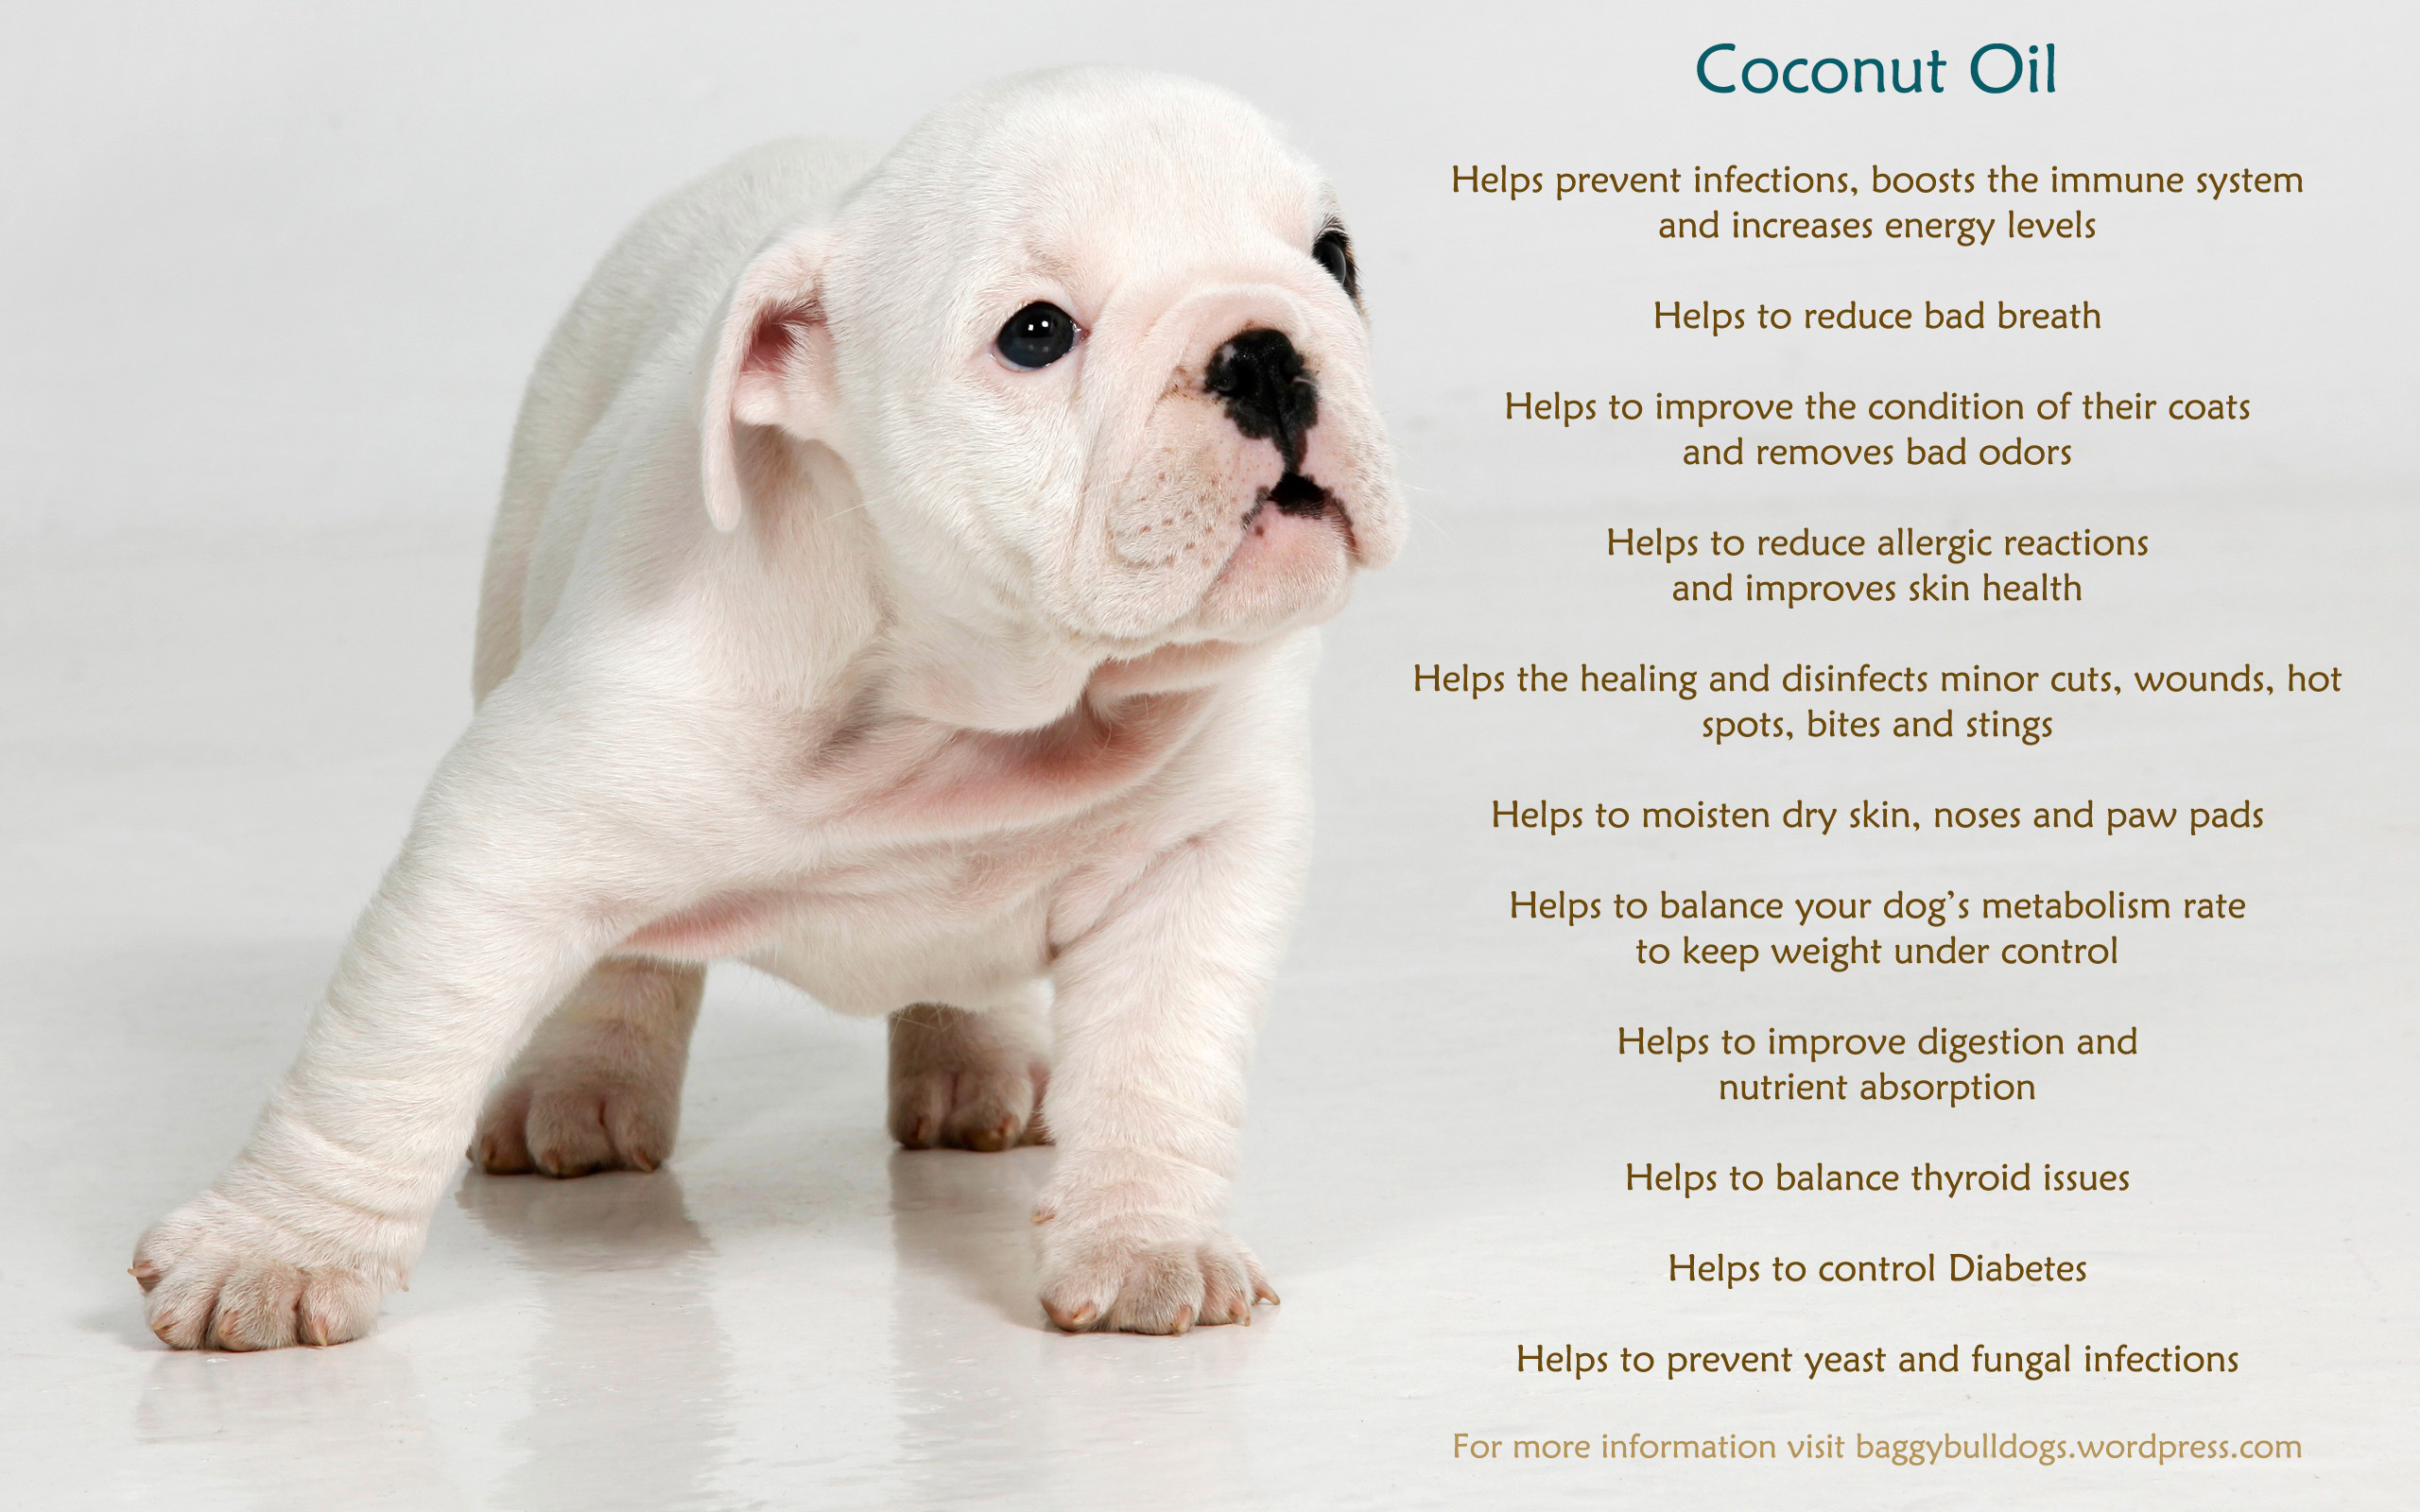 May 05,  · Benefits of Coconut Oil For Dogs So now that we know the science behind the coconut compounds, we can talk about the specific benefits. There is a ton of anecdotal evidence that points to coconut oil for dogs as an effective dietary supplement and treatment option/5(42).